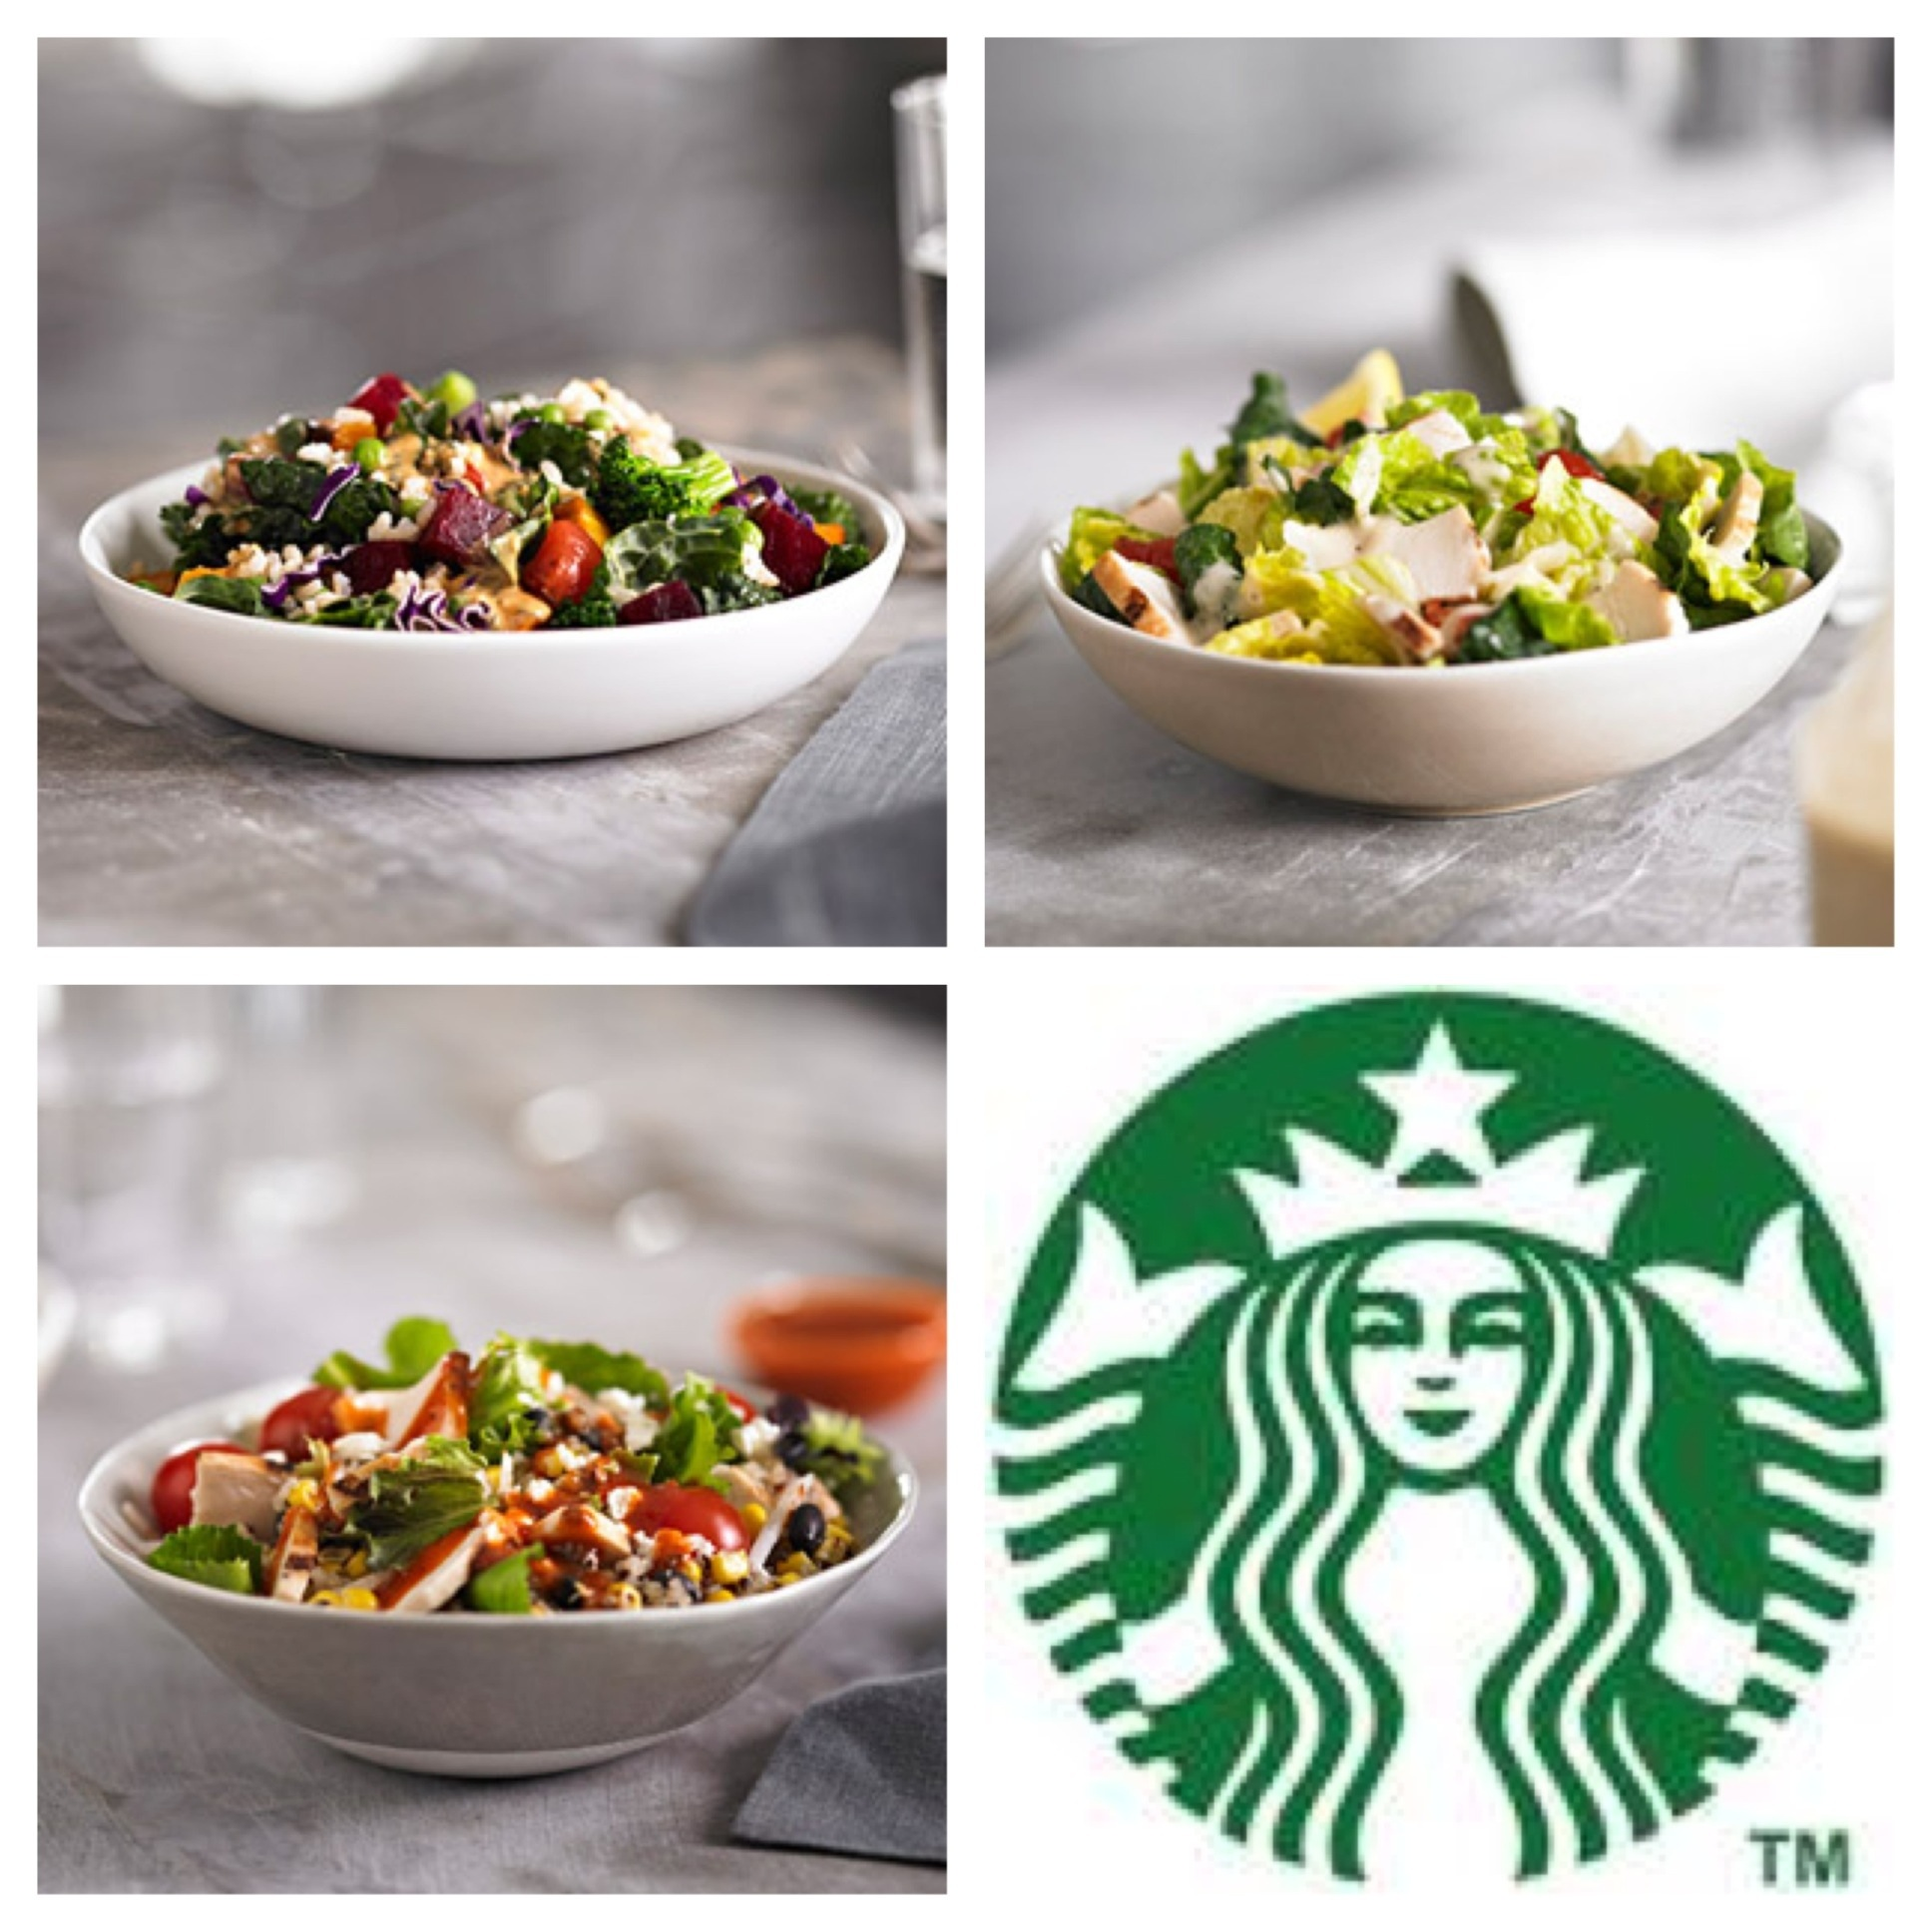 New Lean and Healthy Options at Starbucks